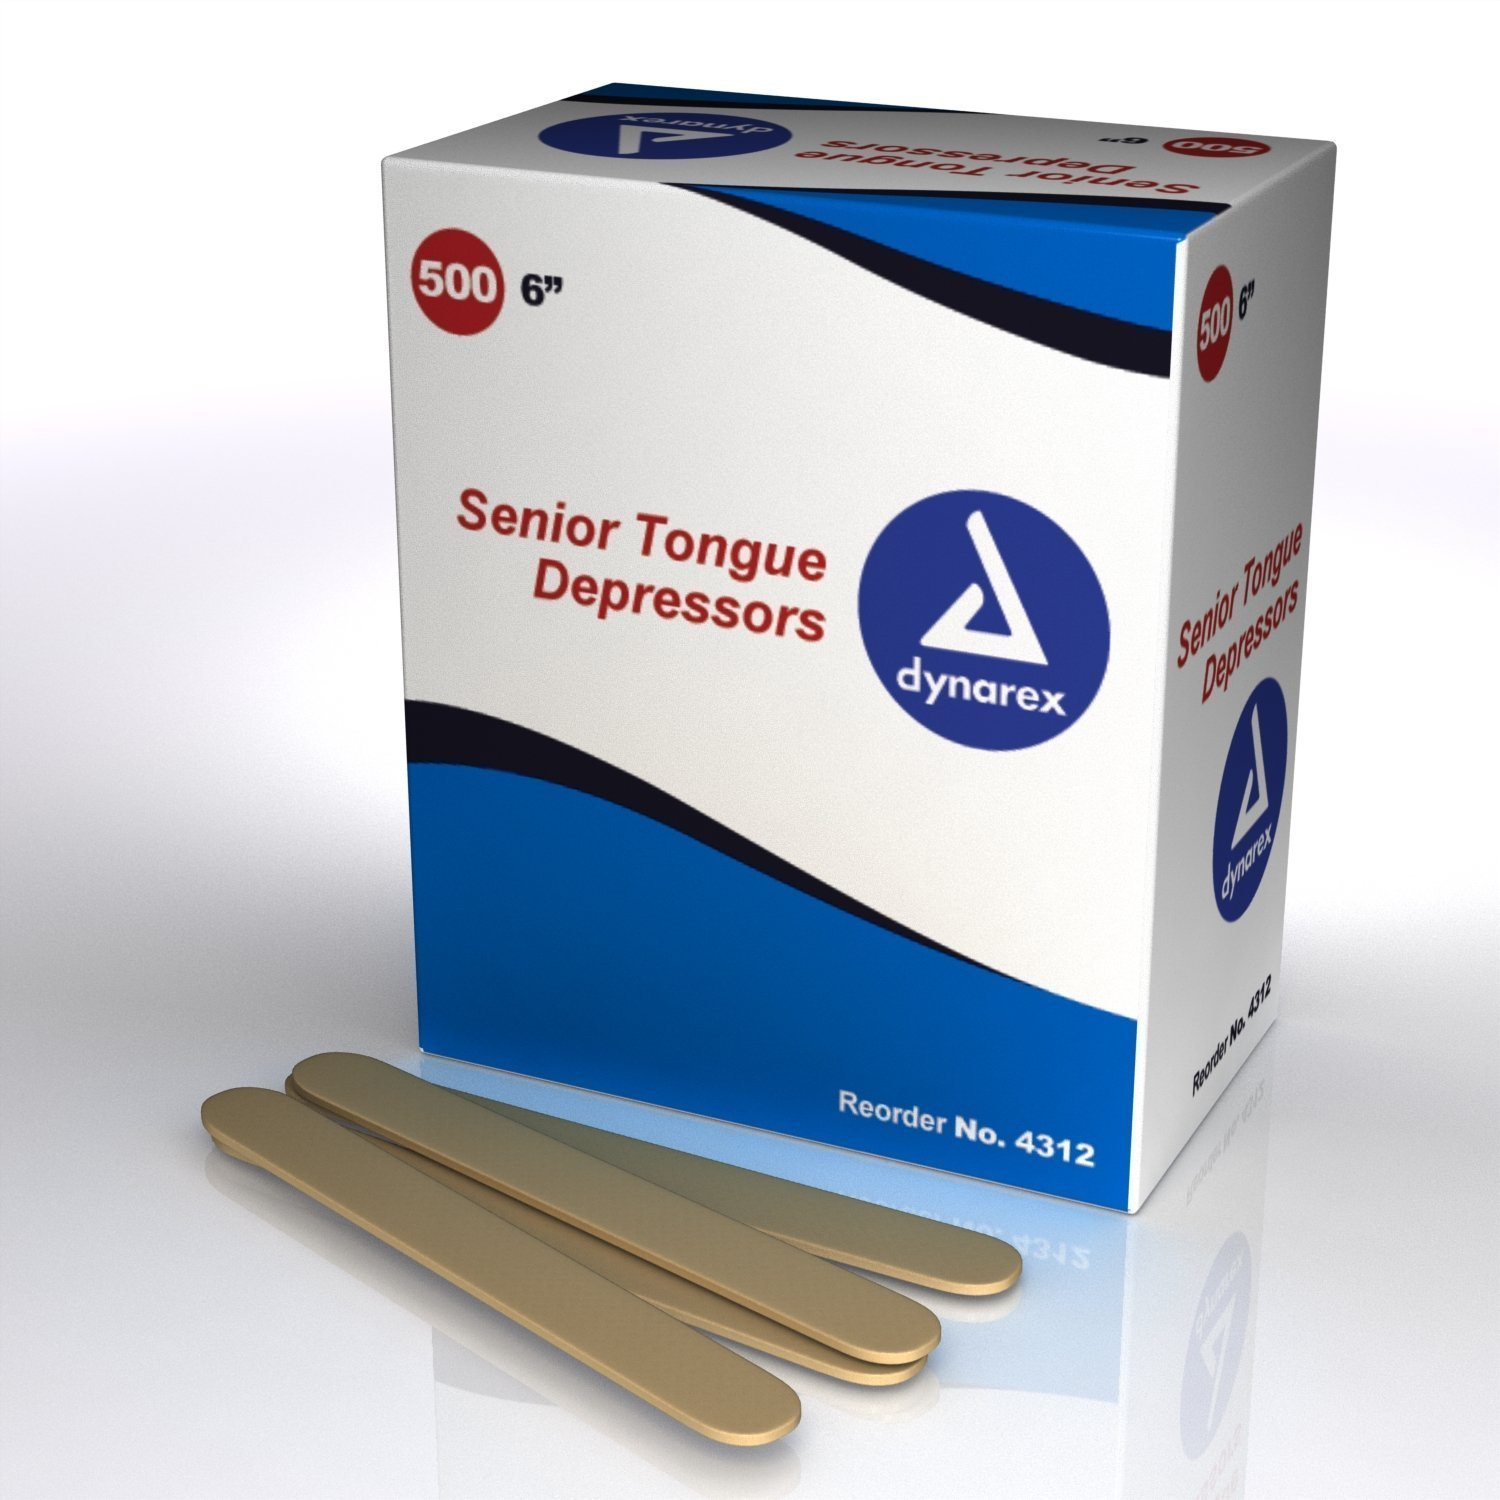 Tongue Depressors, Standard Sized, Case, 10 Boxes, 5000 Depressors